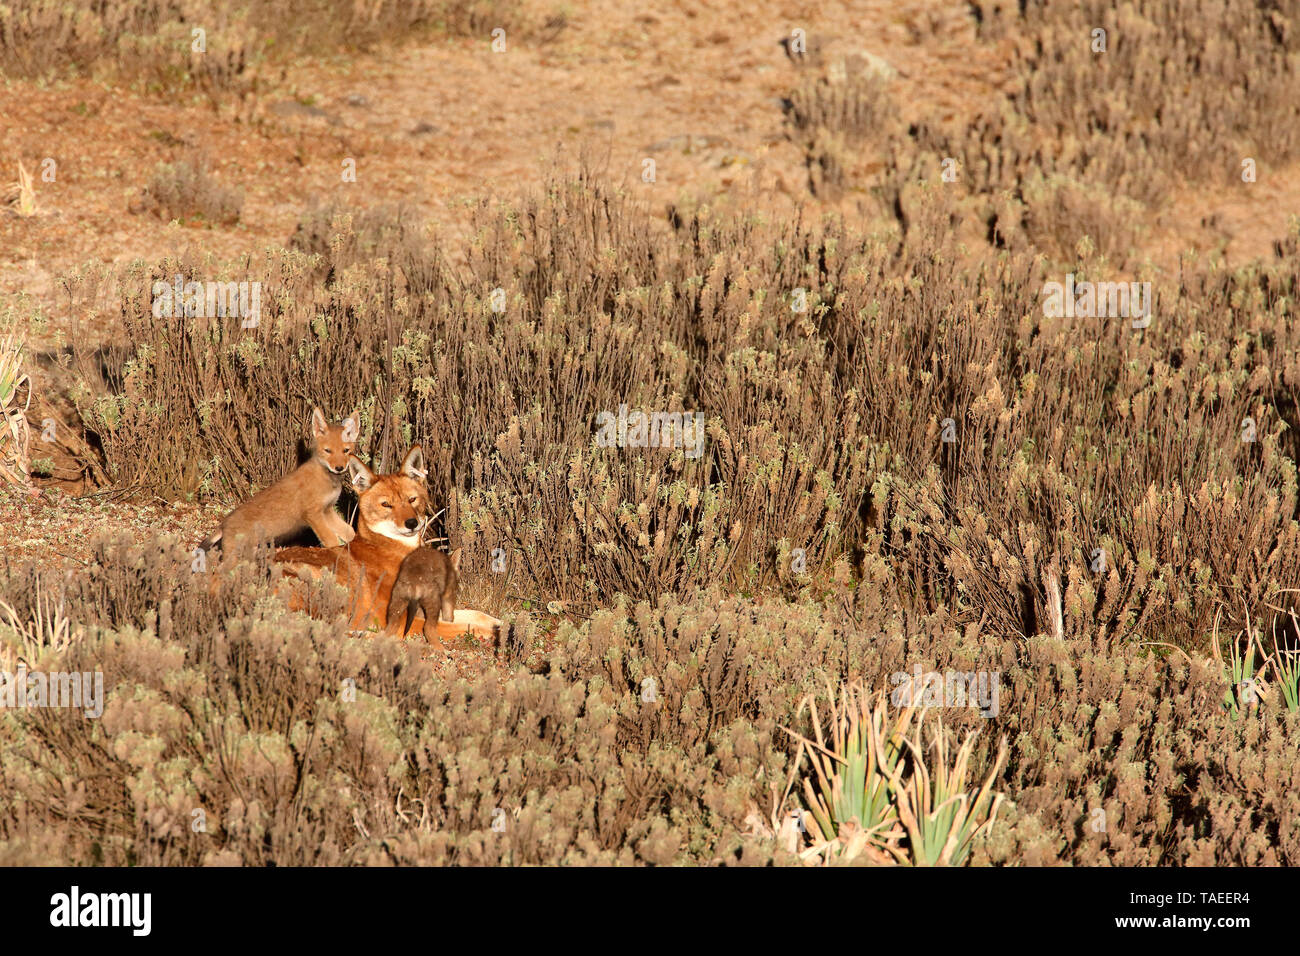 Abyssinian wolf (Canis simensis) Alpha she-wolf and 1 month old wolf cubs, Web Valley, Bale mountains, Ethiopia - Stock Image